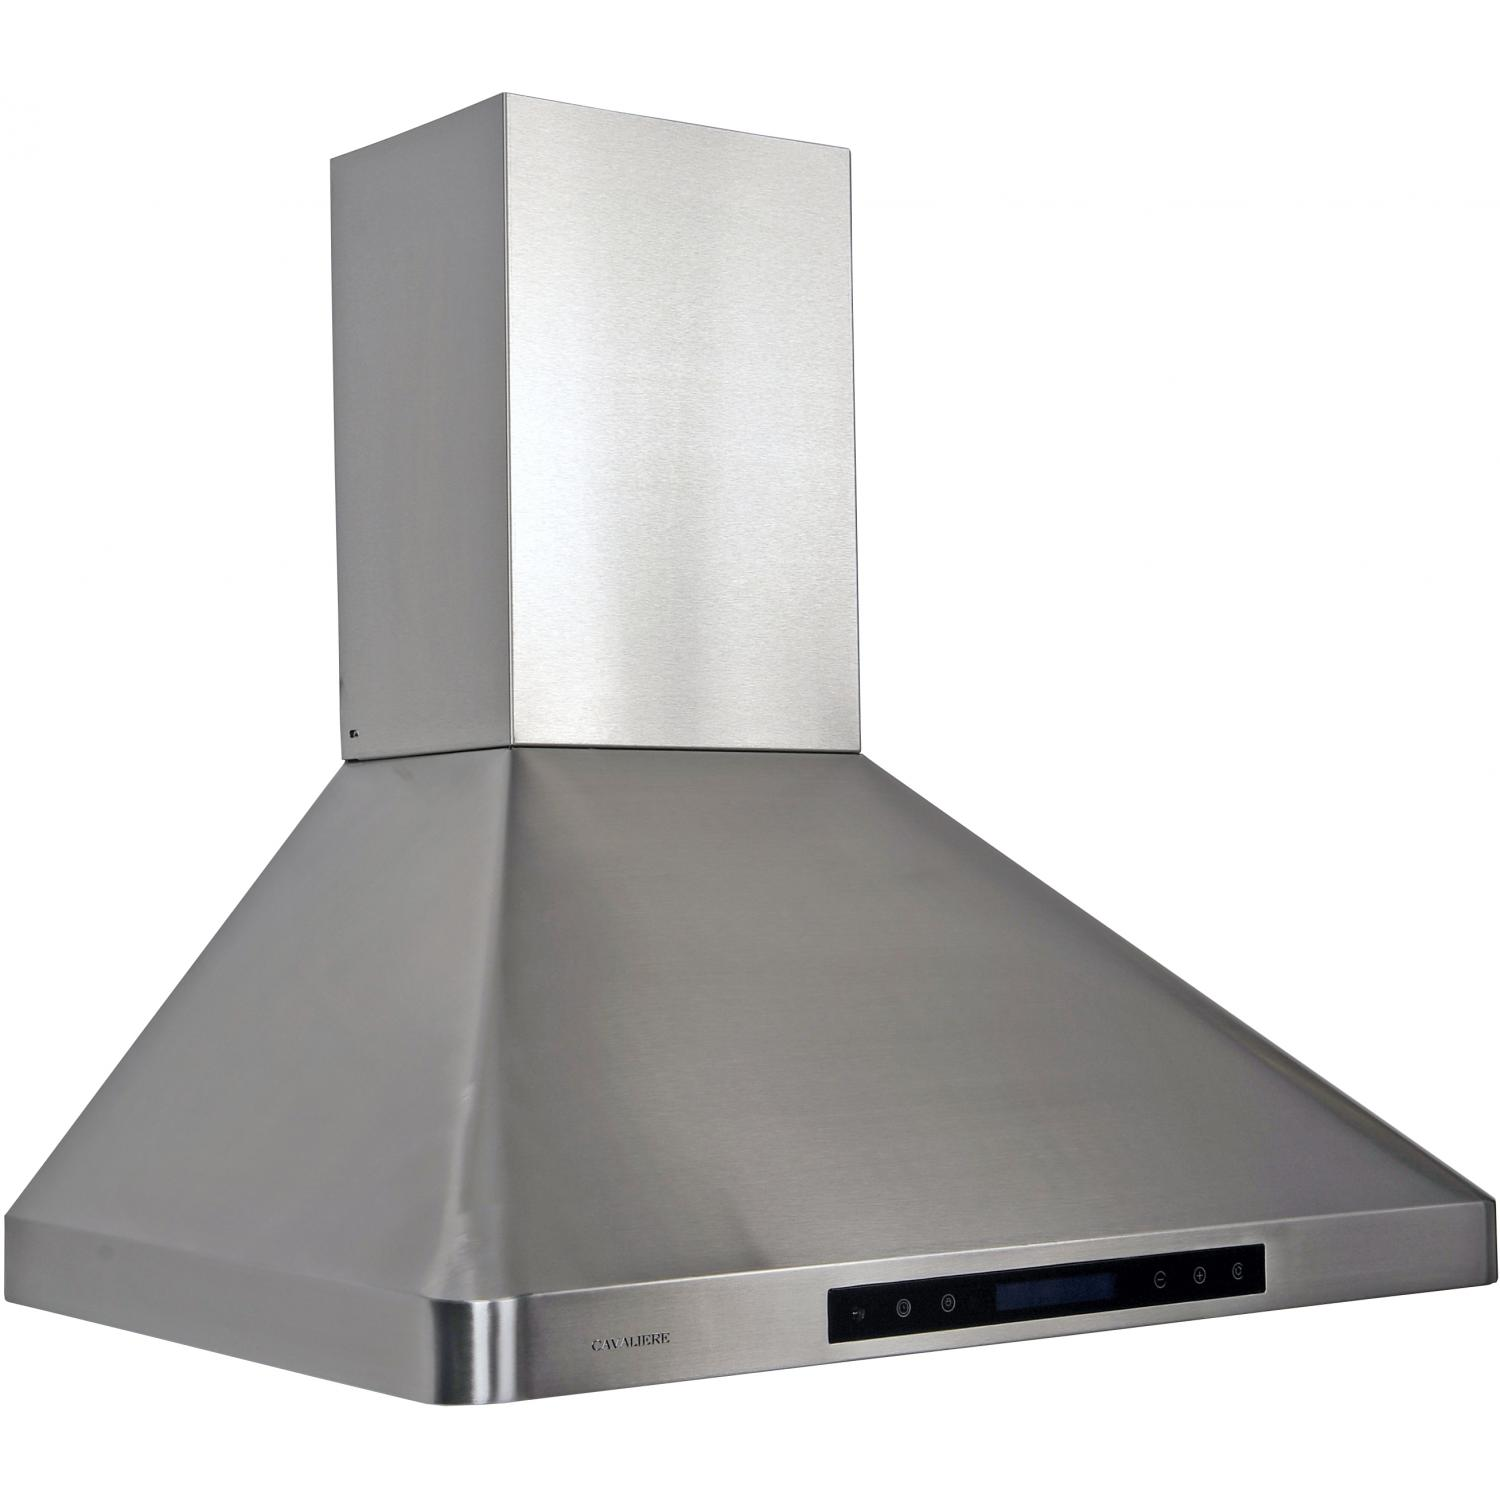 Cavaliere Airpro 238 Professional Series 30 Inch 900 Cfm Wall Mounted Range Hood Ap238 Ps29 30 Bbqguys Wall Mount Range Hood Steel Wall Range Hood